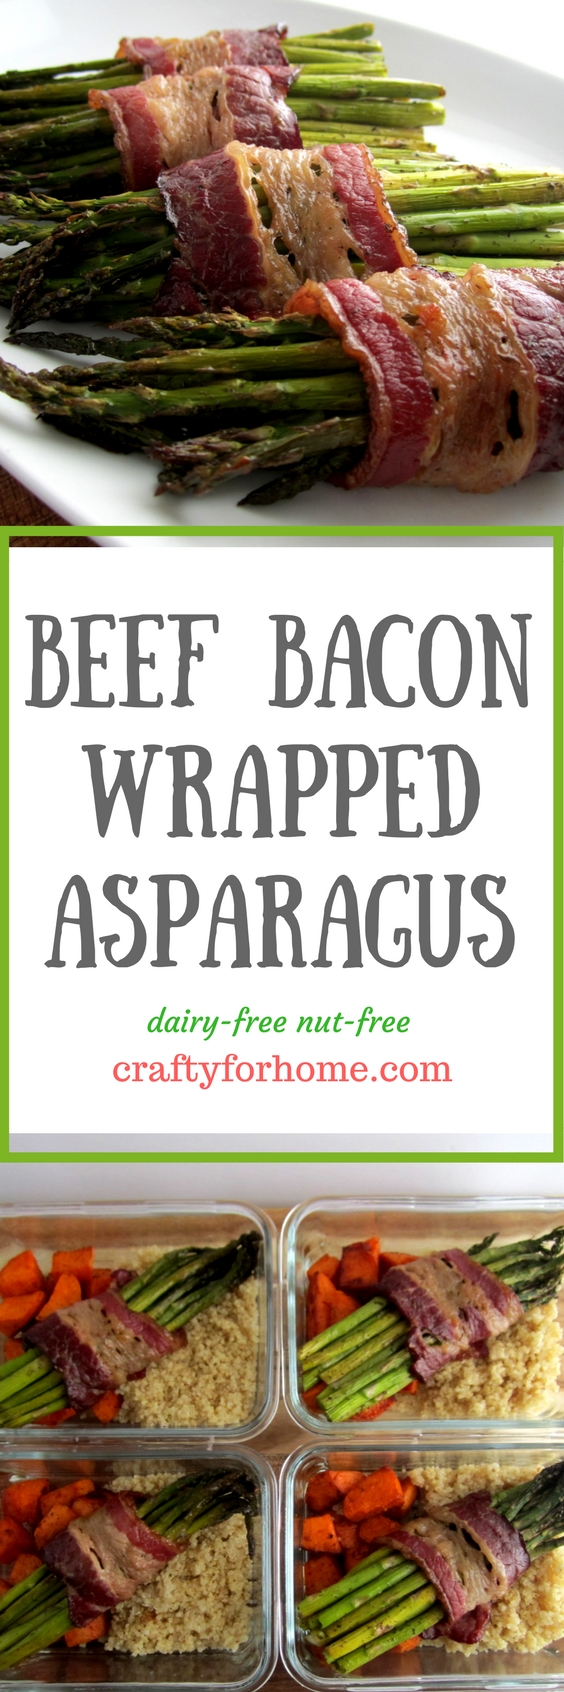 Beef Bacon Wrapped Asparagus Crafty For Home